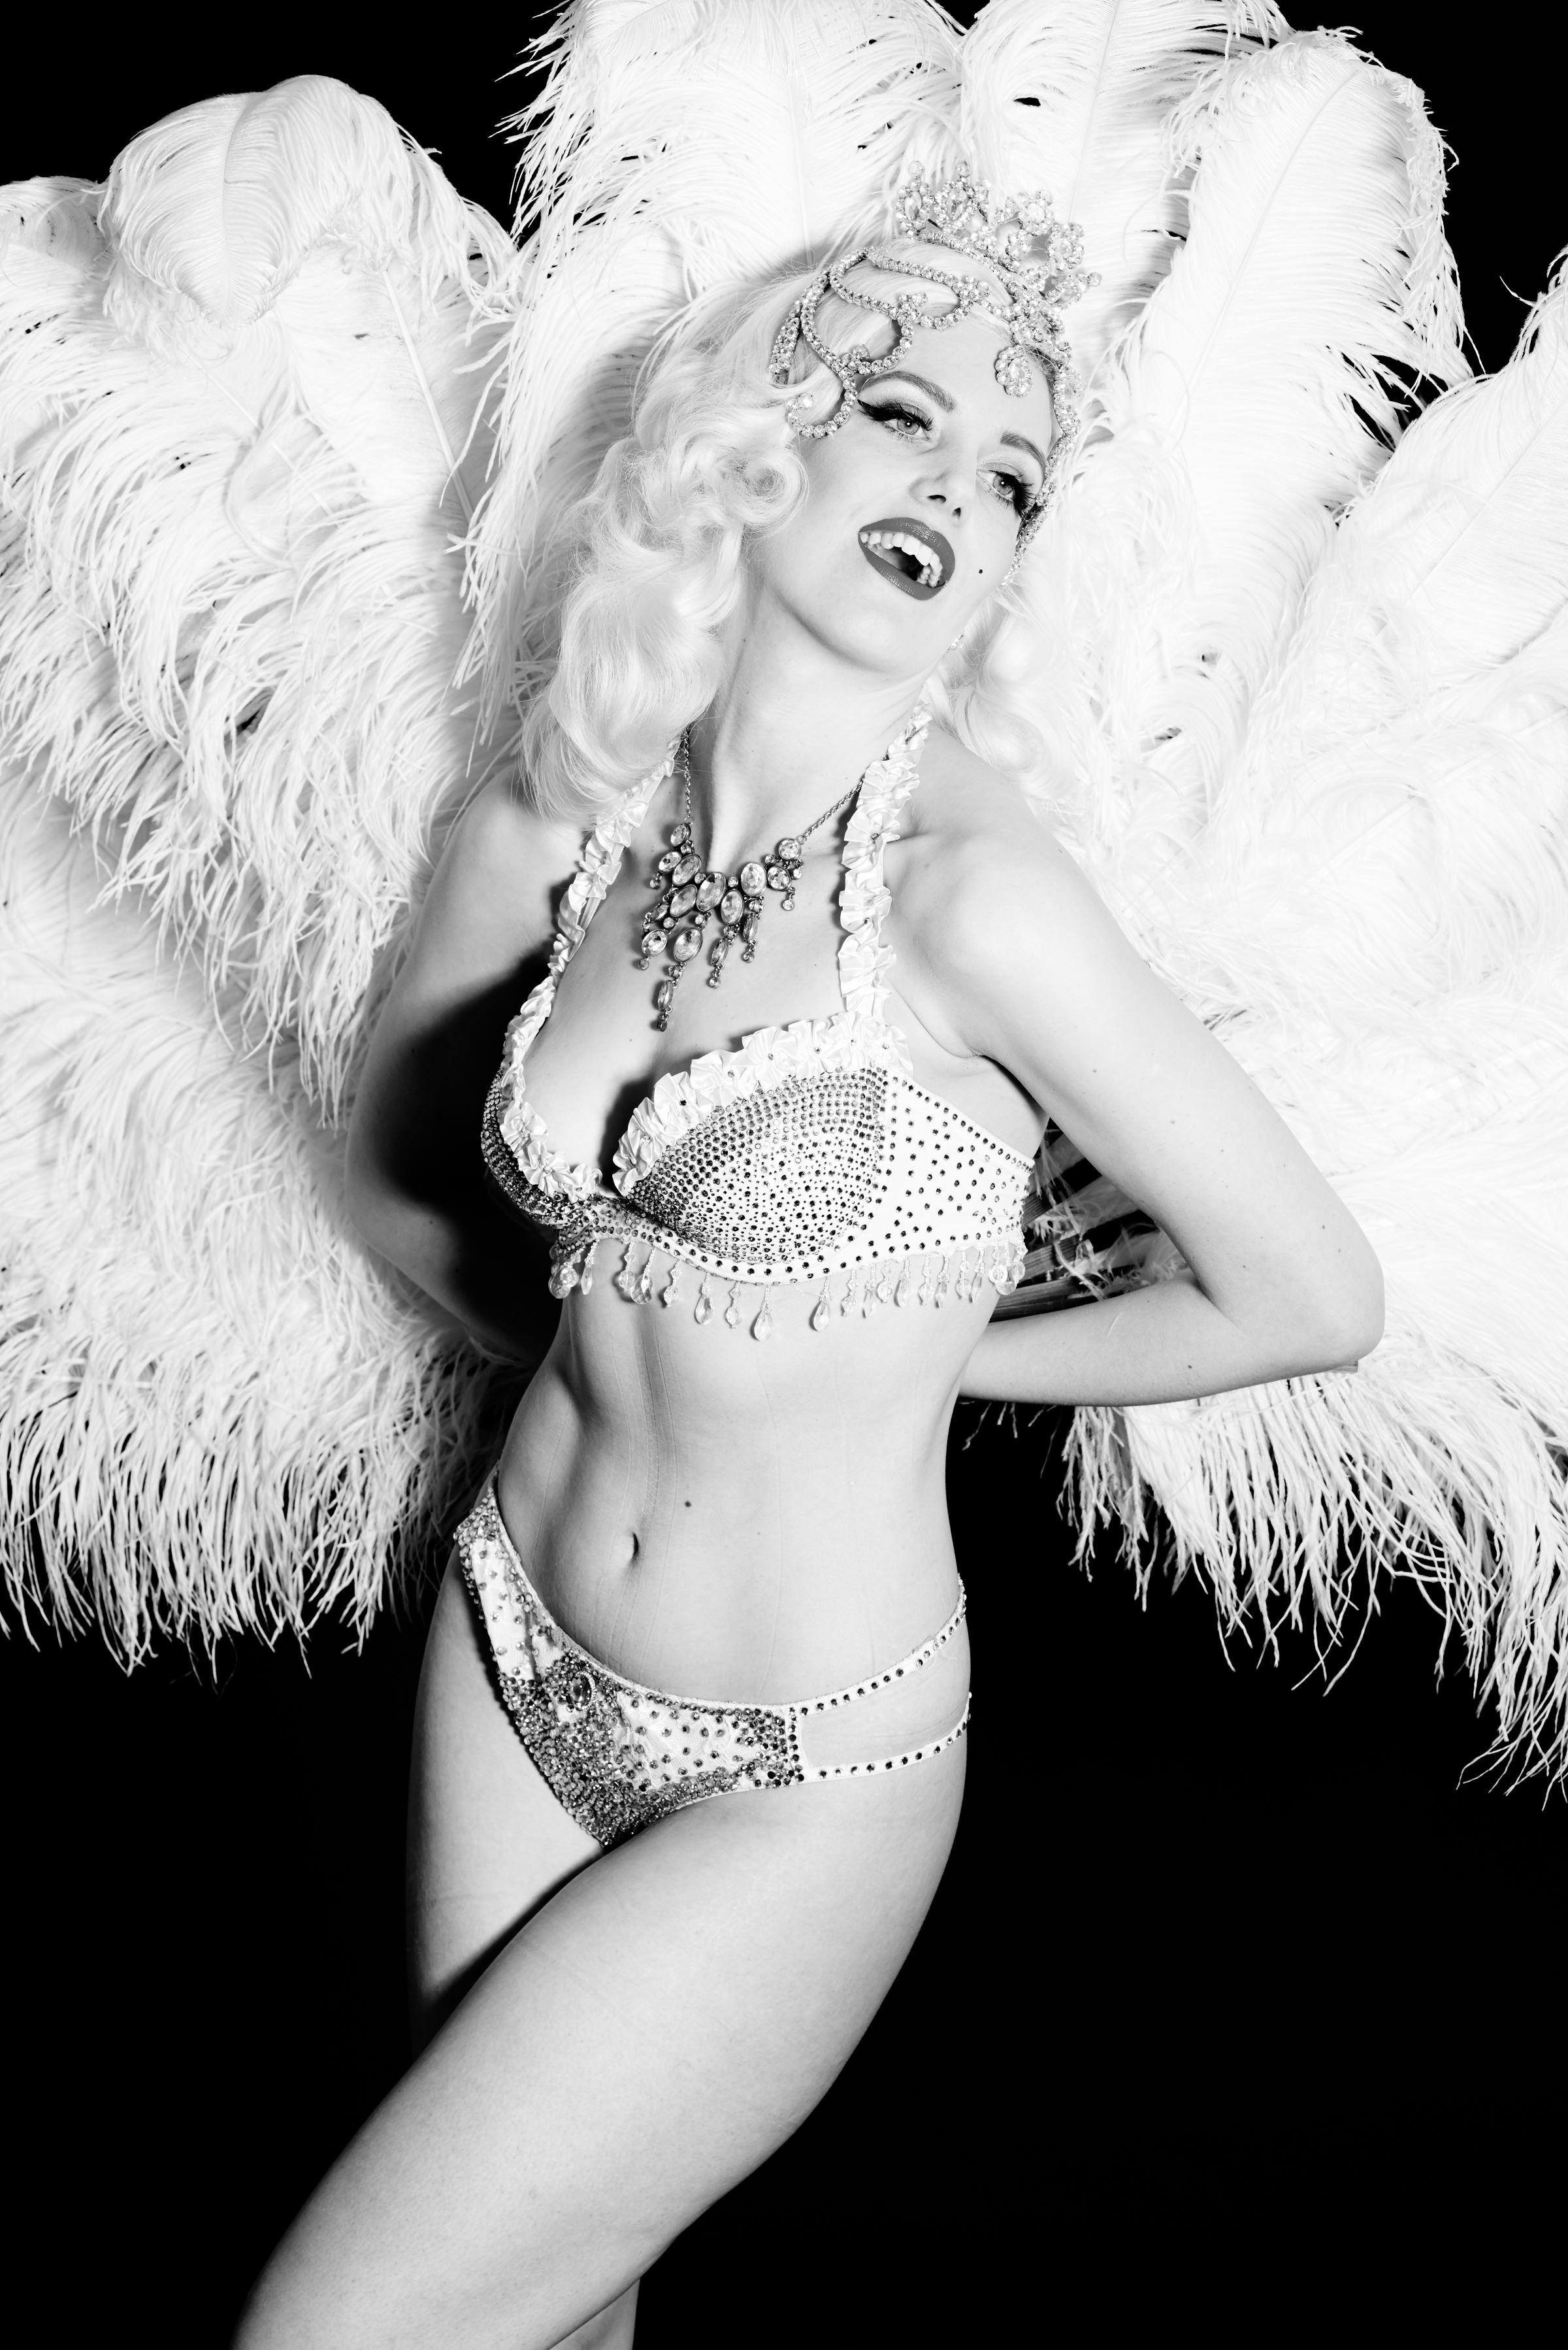 Burlesque performer Frankii Wilde photographed Keith Moss